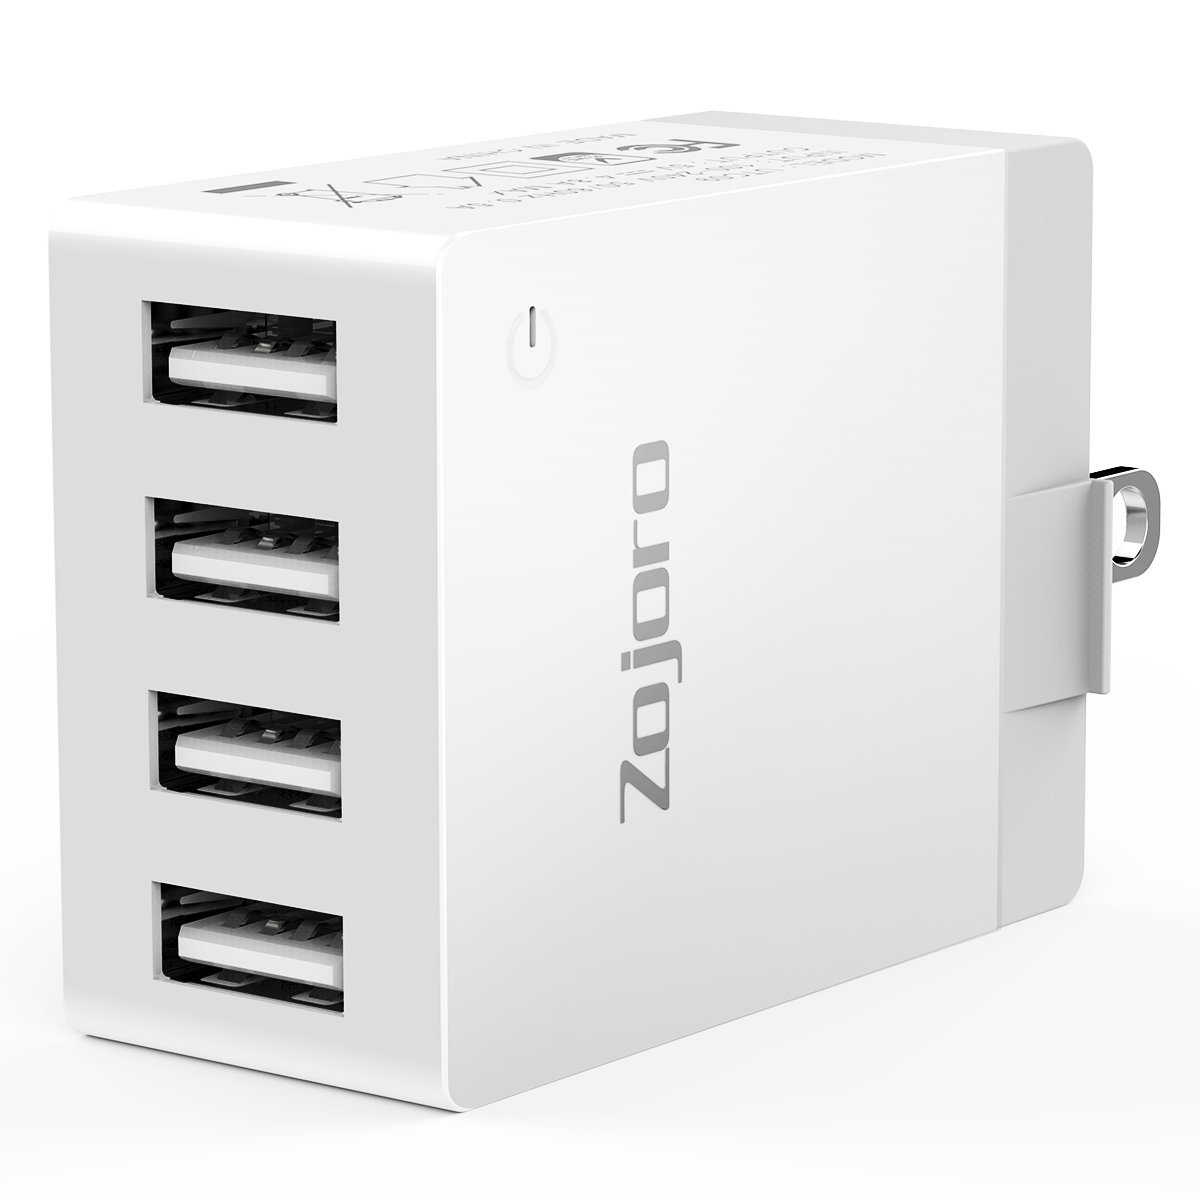 Top 10 Best USB Wall Chargers in 2021